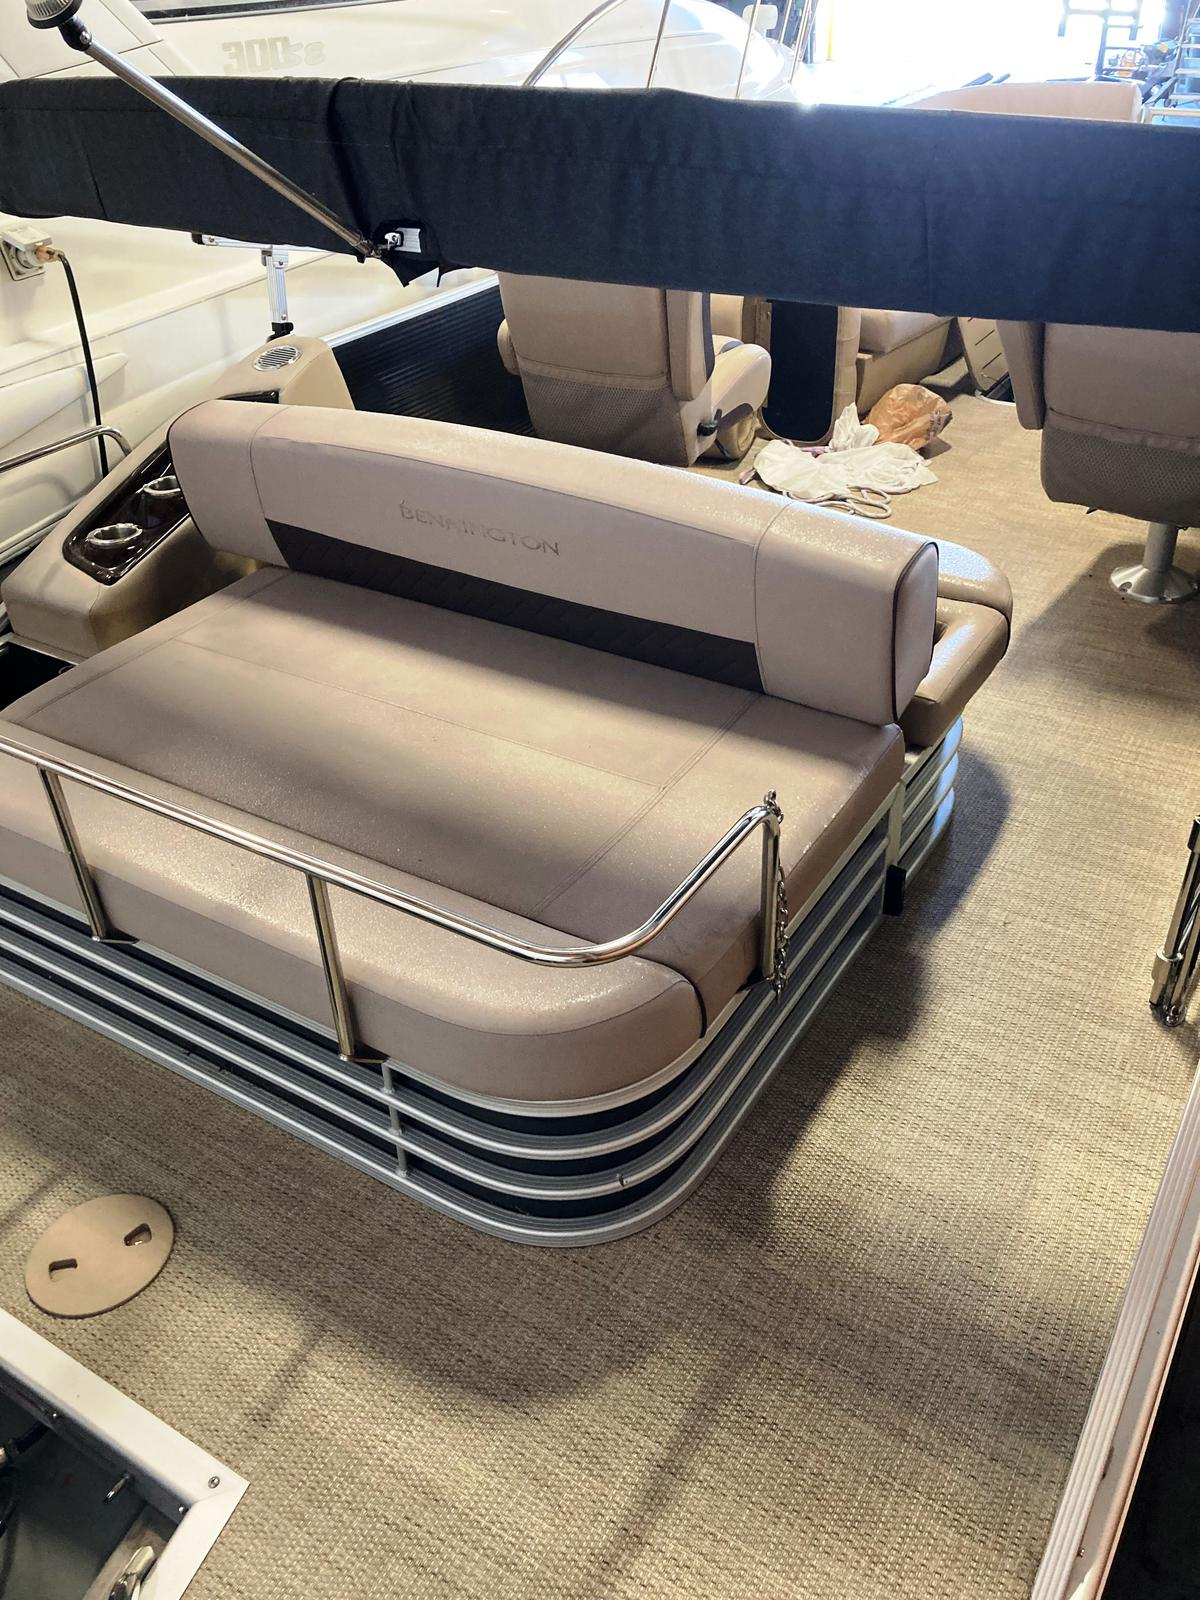 2019 Bennington boat for sale, model of the boat is 25 SSBXP & Image # 2 of 5